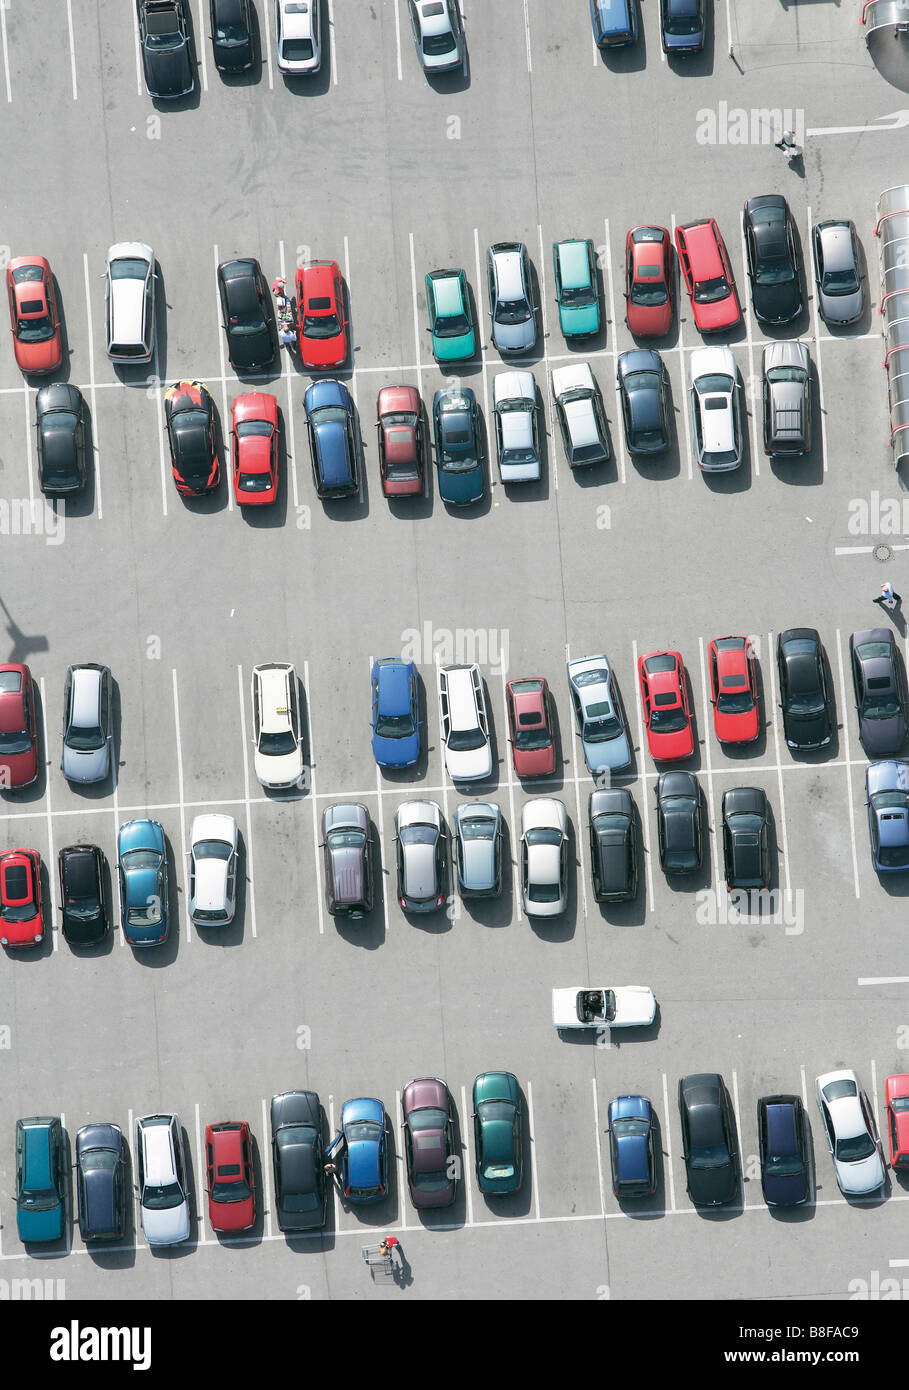 Parking lot, aerial photo - Stock Image